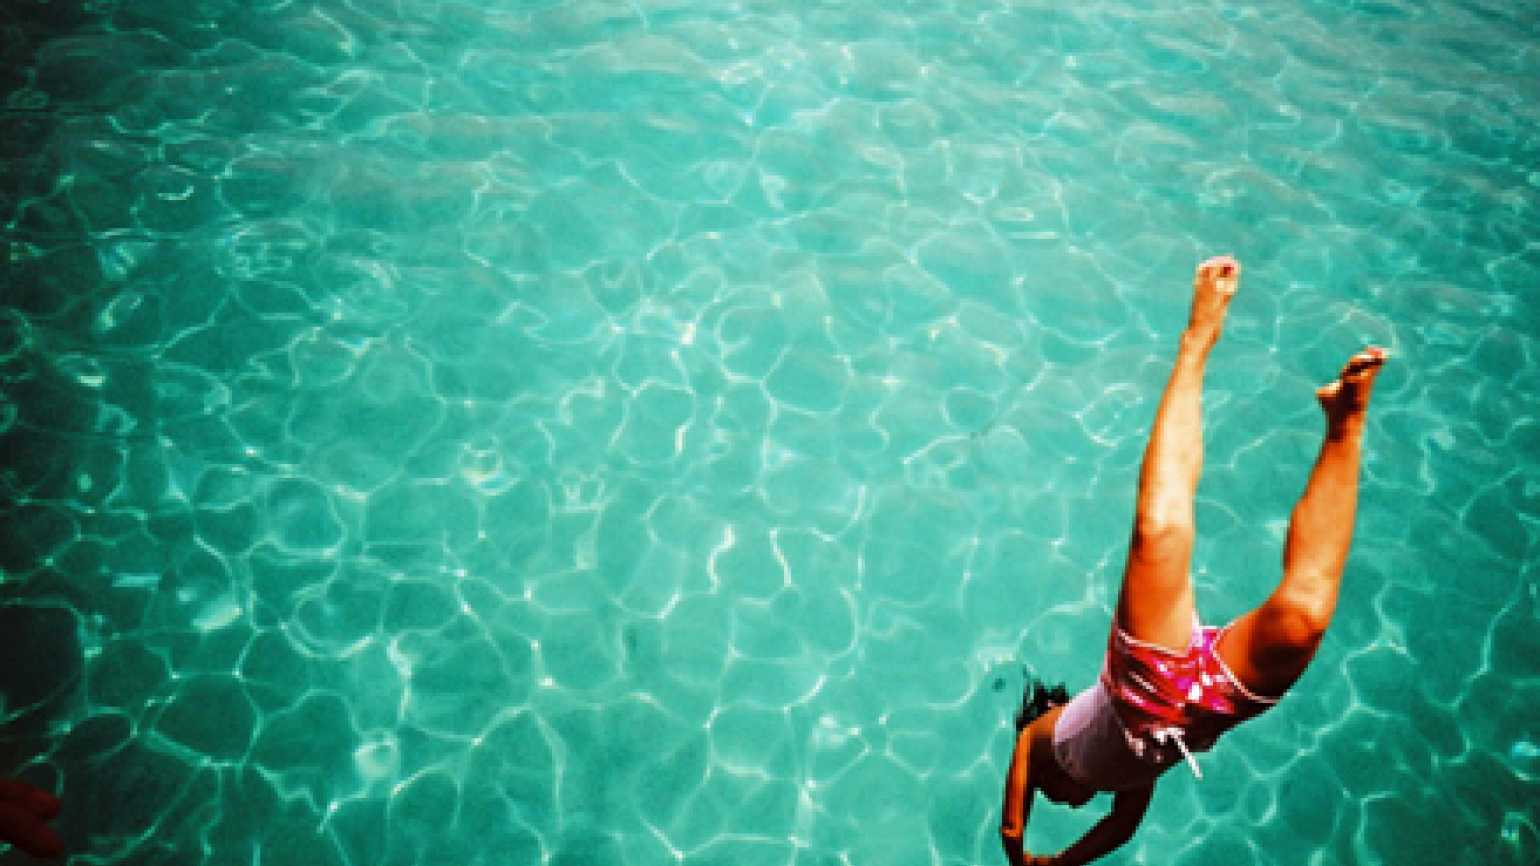 A woman diving into beautiful water -- an image of positivity